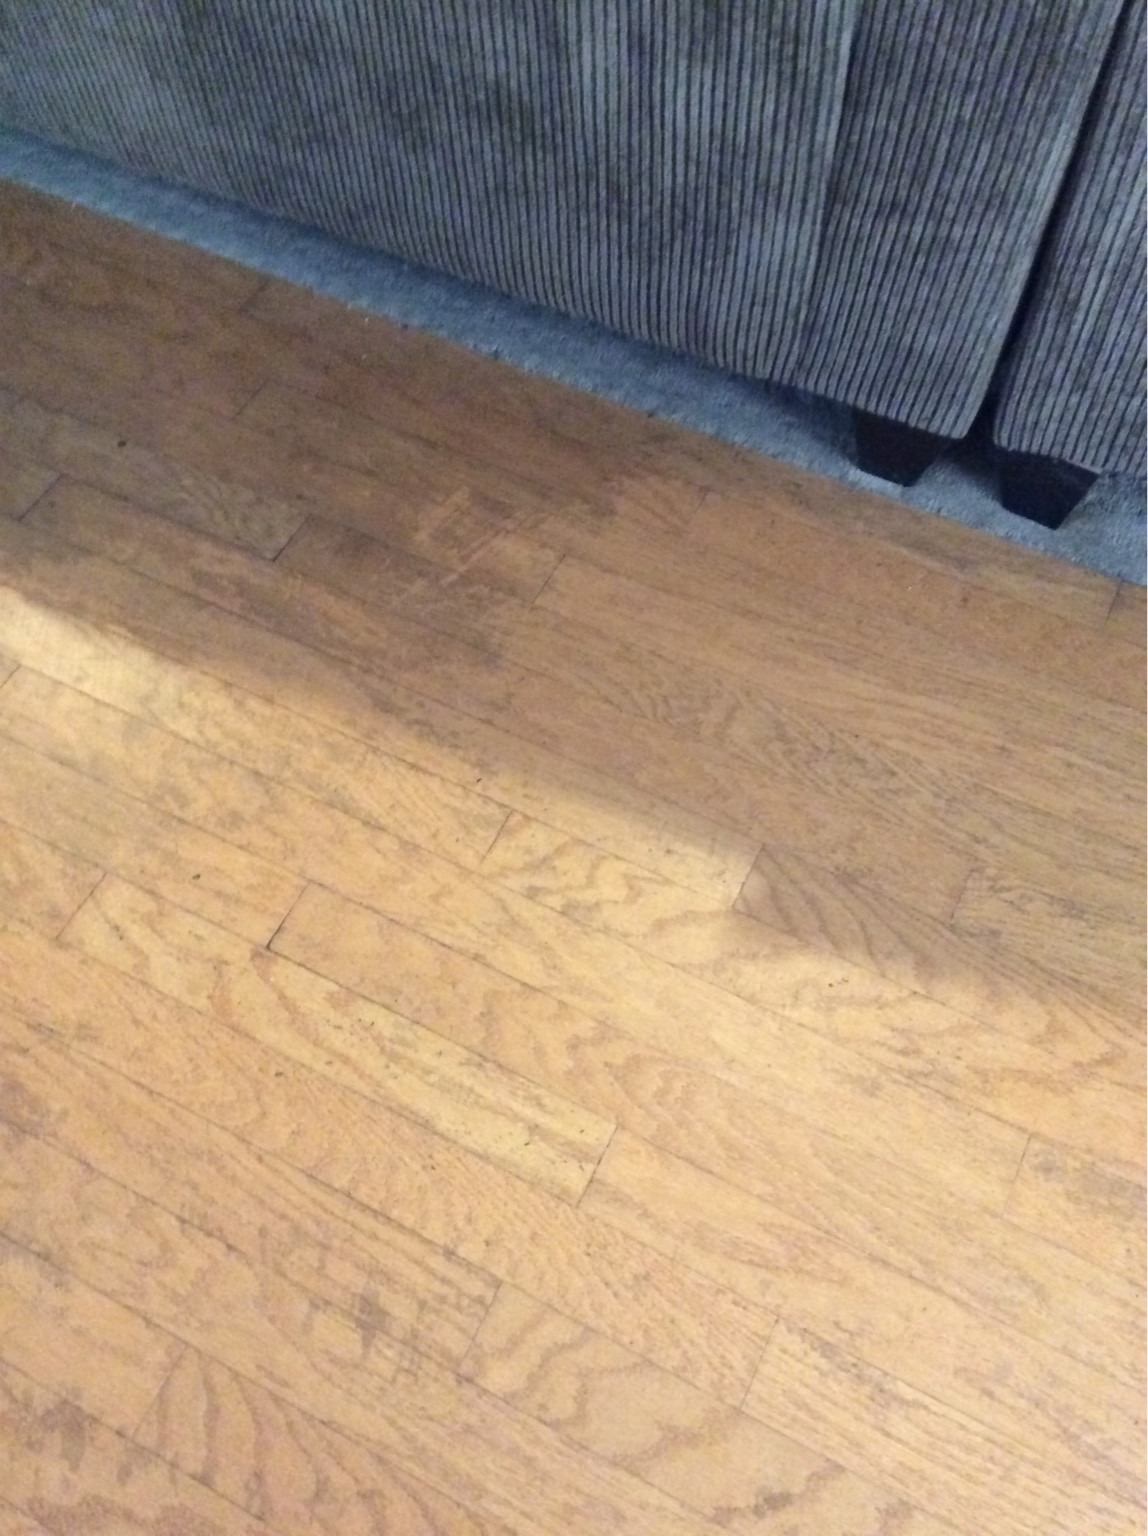 clean and wax hardwood floors of hardwood floor cleaning help truckmount forums 1 carpet regarding how would you guys clean this wood floors